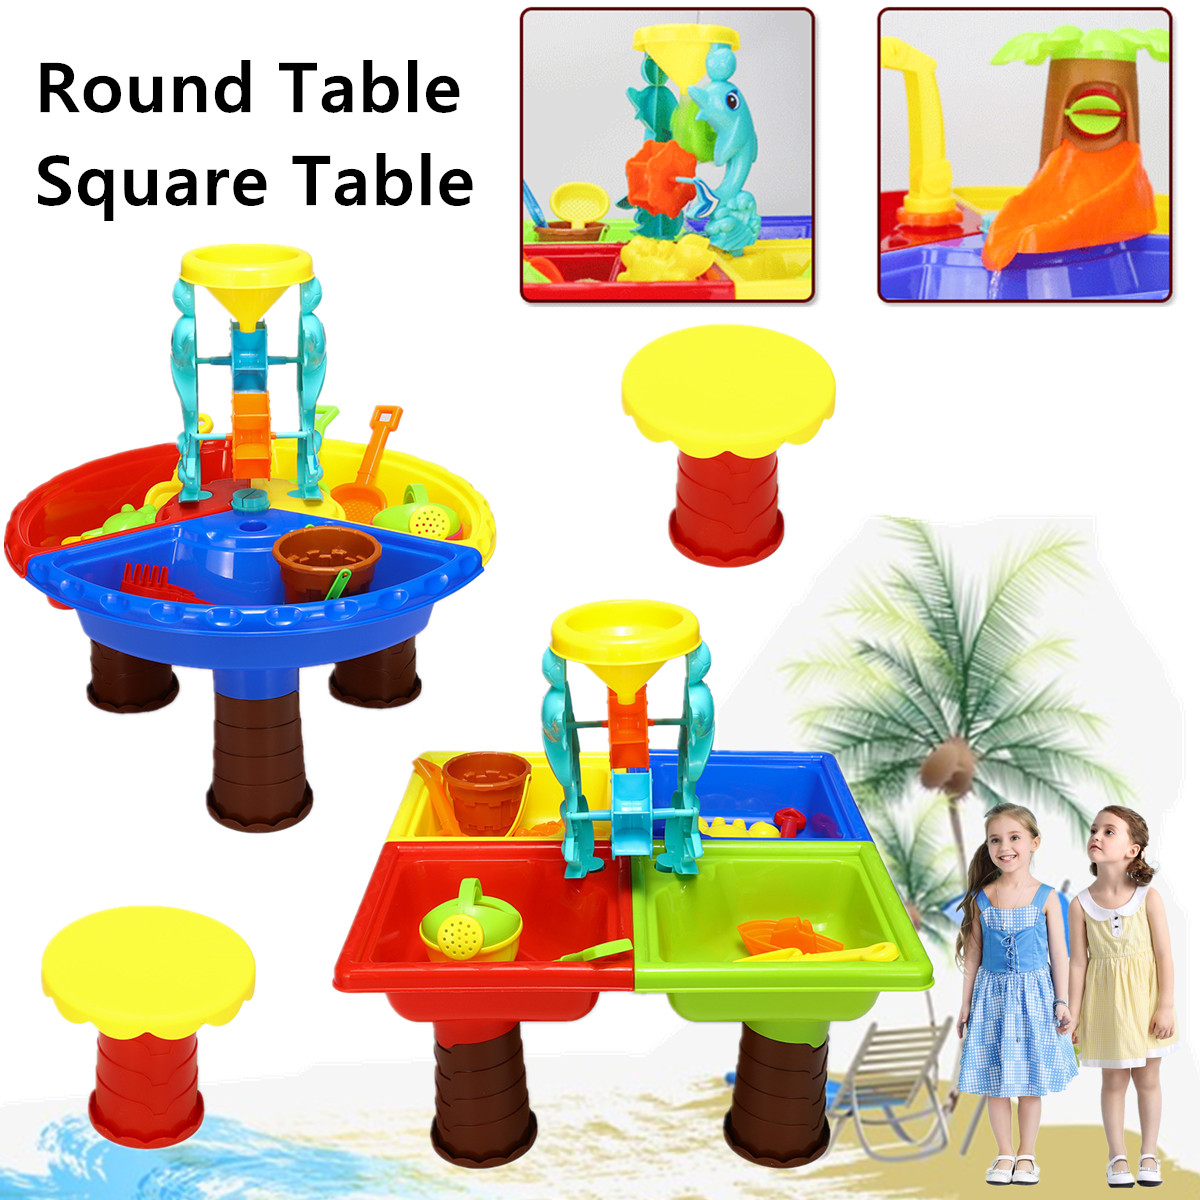 22Pcs Sand & Water Round/Square Table Box Kids Children Outdoor Activity Beach Toy Play Set Four Separated Bright Colour Funny 22pcs sand